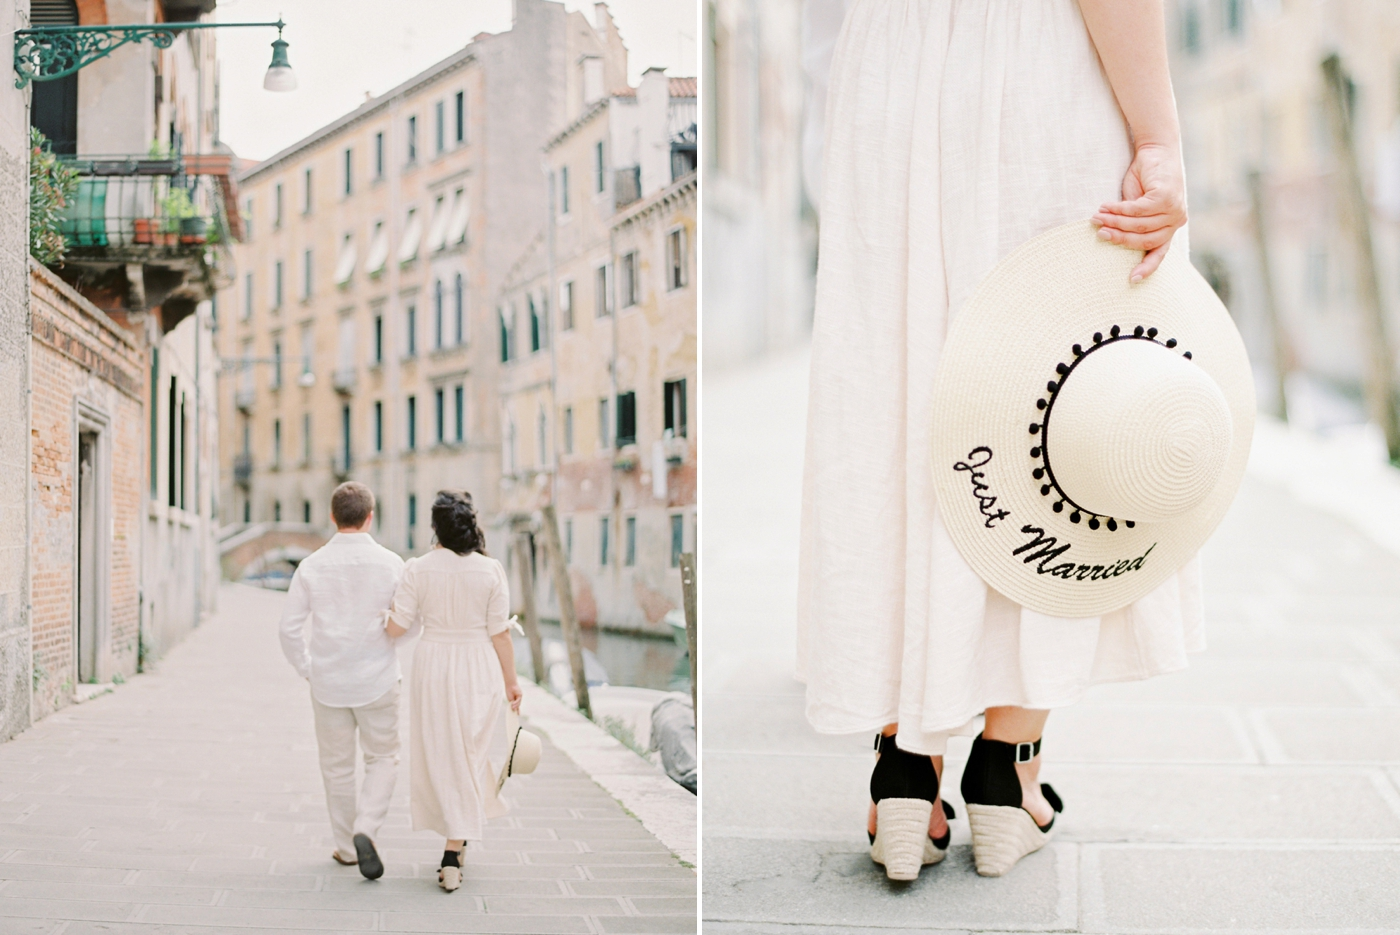 Venice italy wedding photographers   couples honeymoon session   exploring venice canals with film photographer justine milton